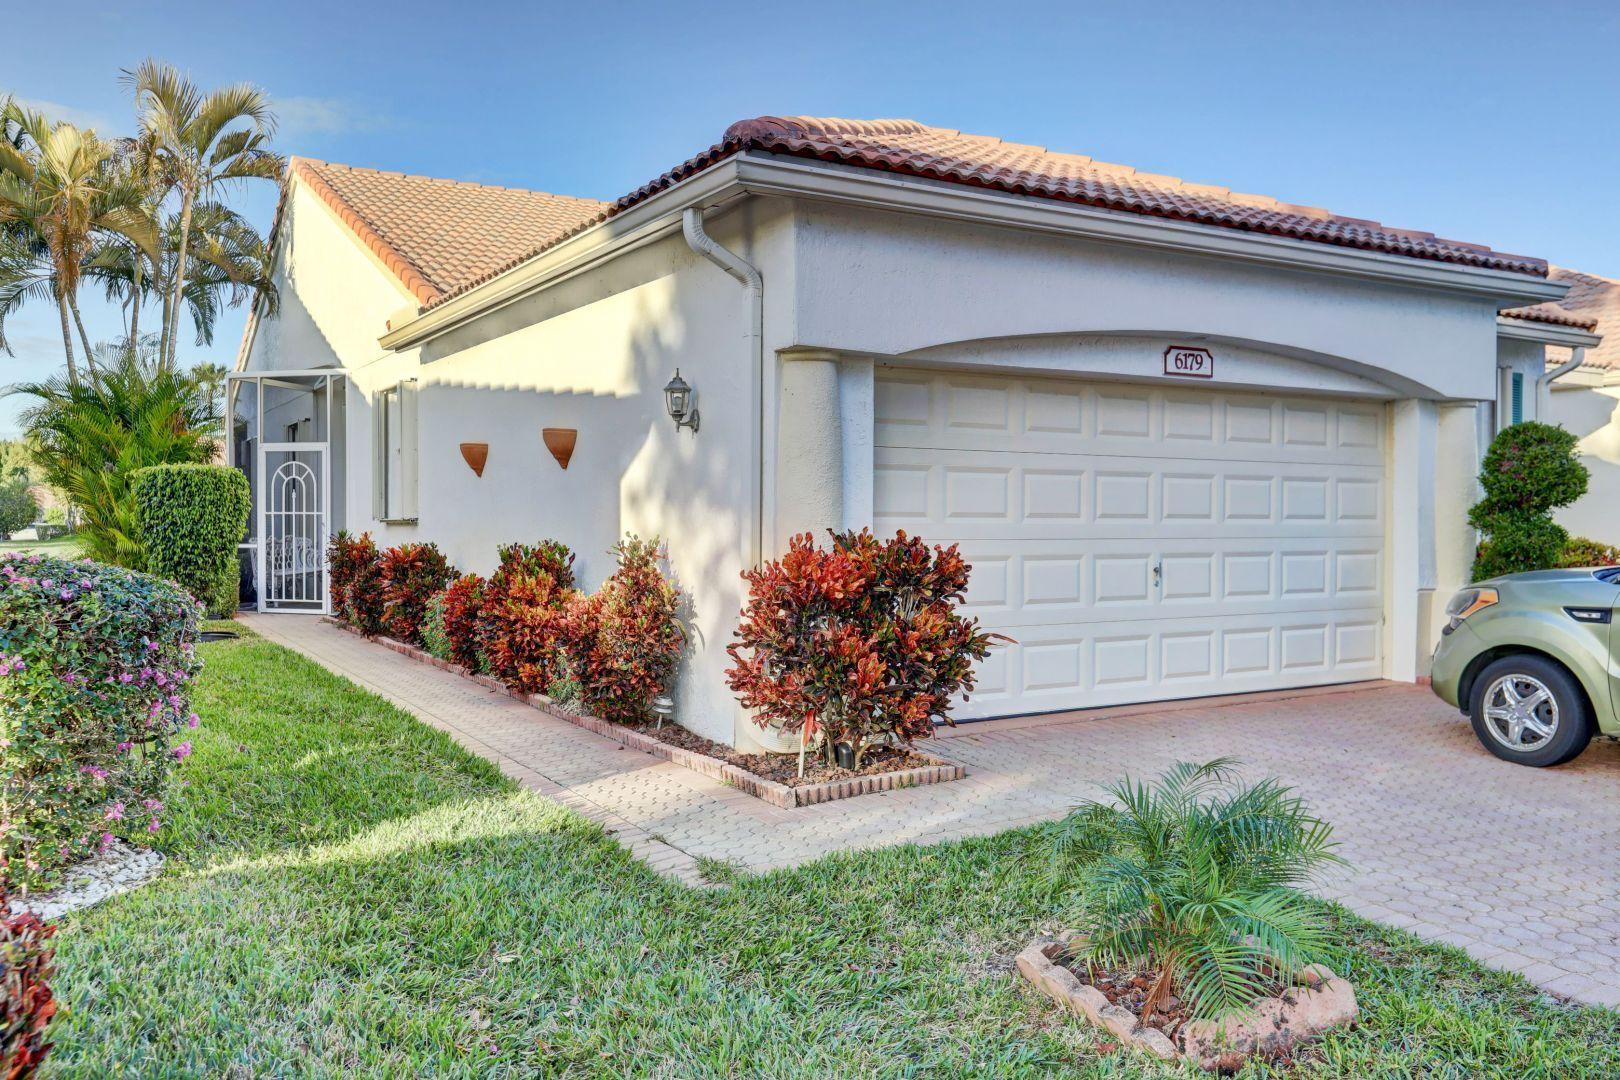 FLORAL LAKES home 6179 Caladium Road Delray Beach FL 33484